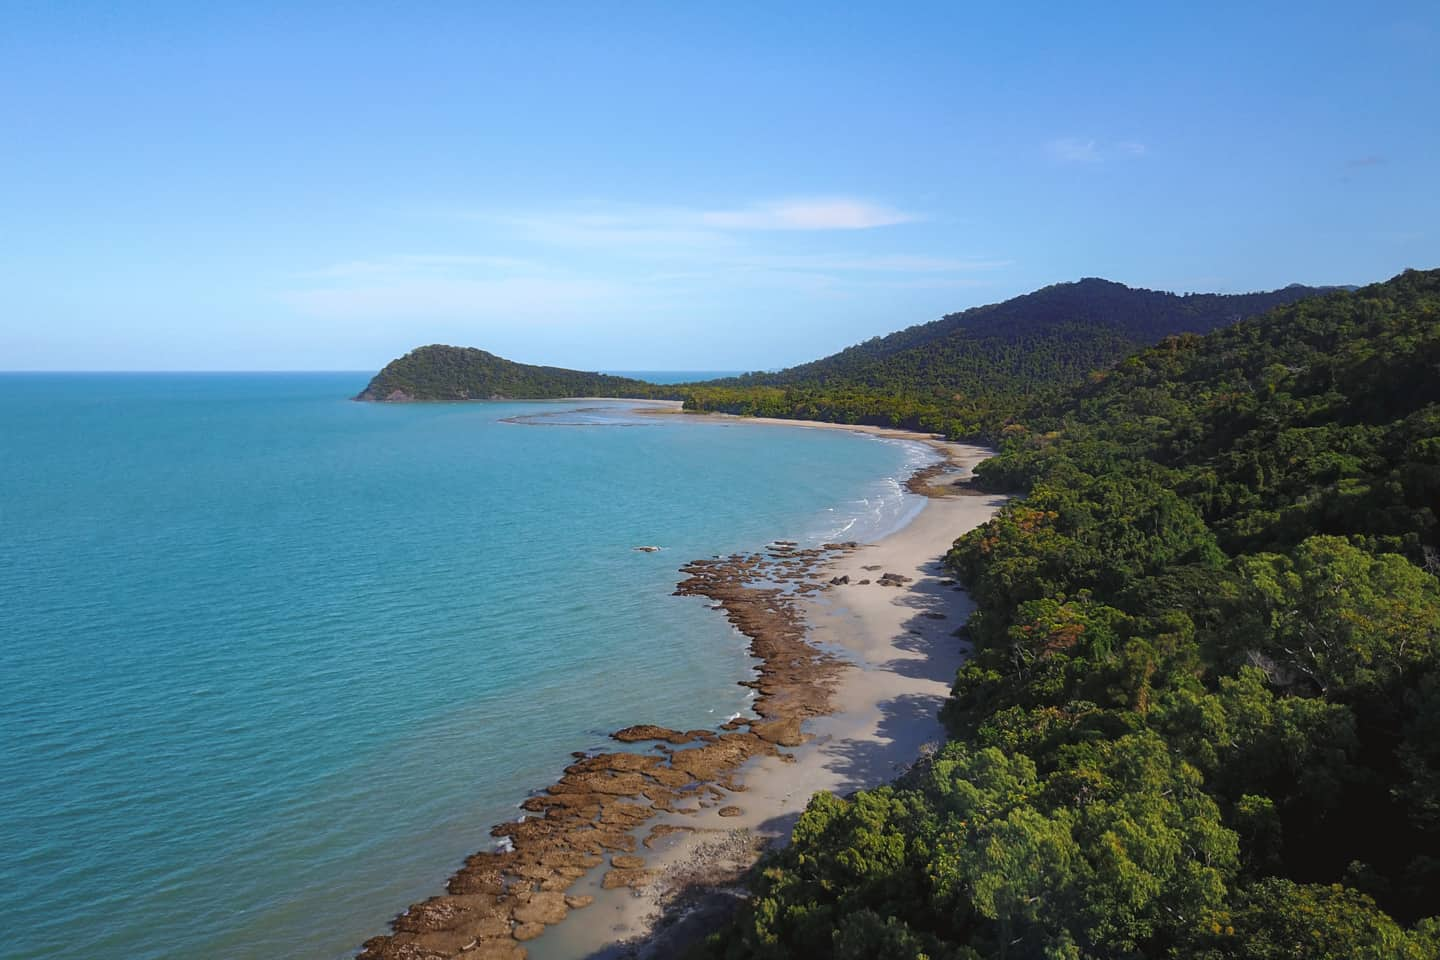 An aerial view of the beach at Cape Tribulation where the Daintree Rainforest meets the Great Barrier Reef